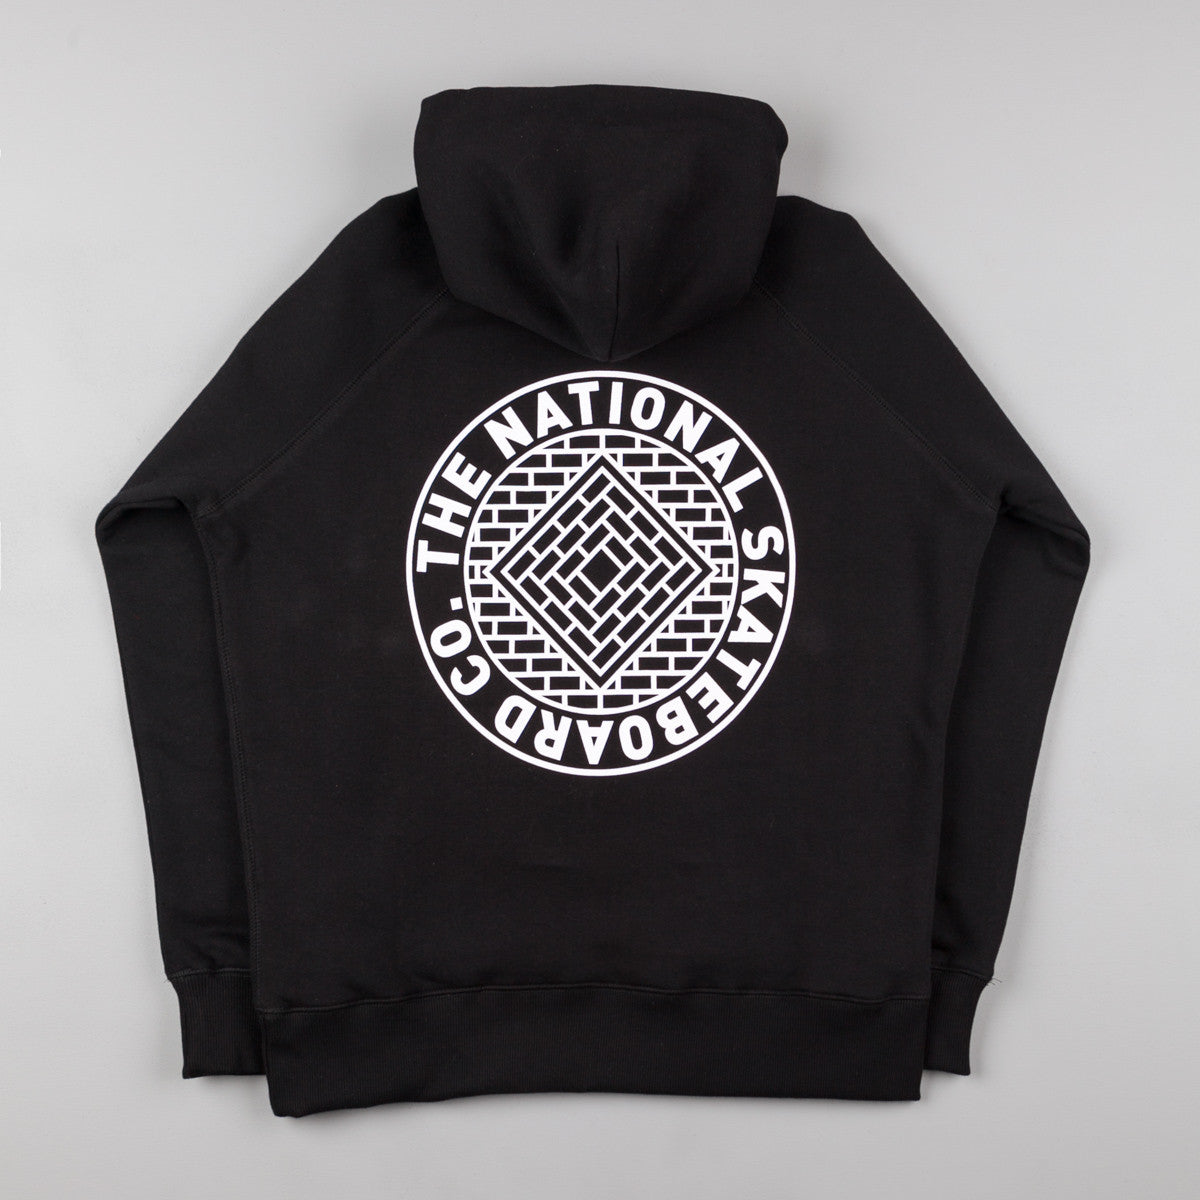 The National Skateboard Co Union Hooded Sweatshirt - Black